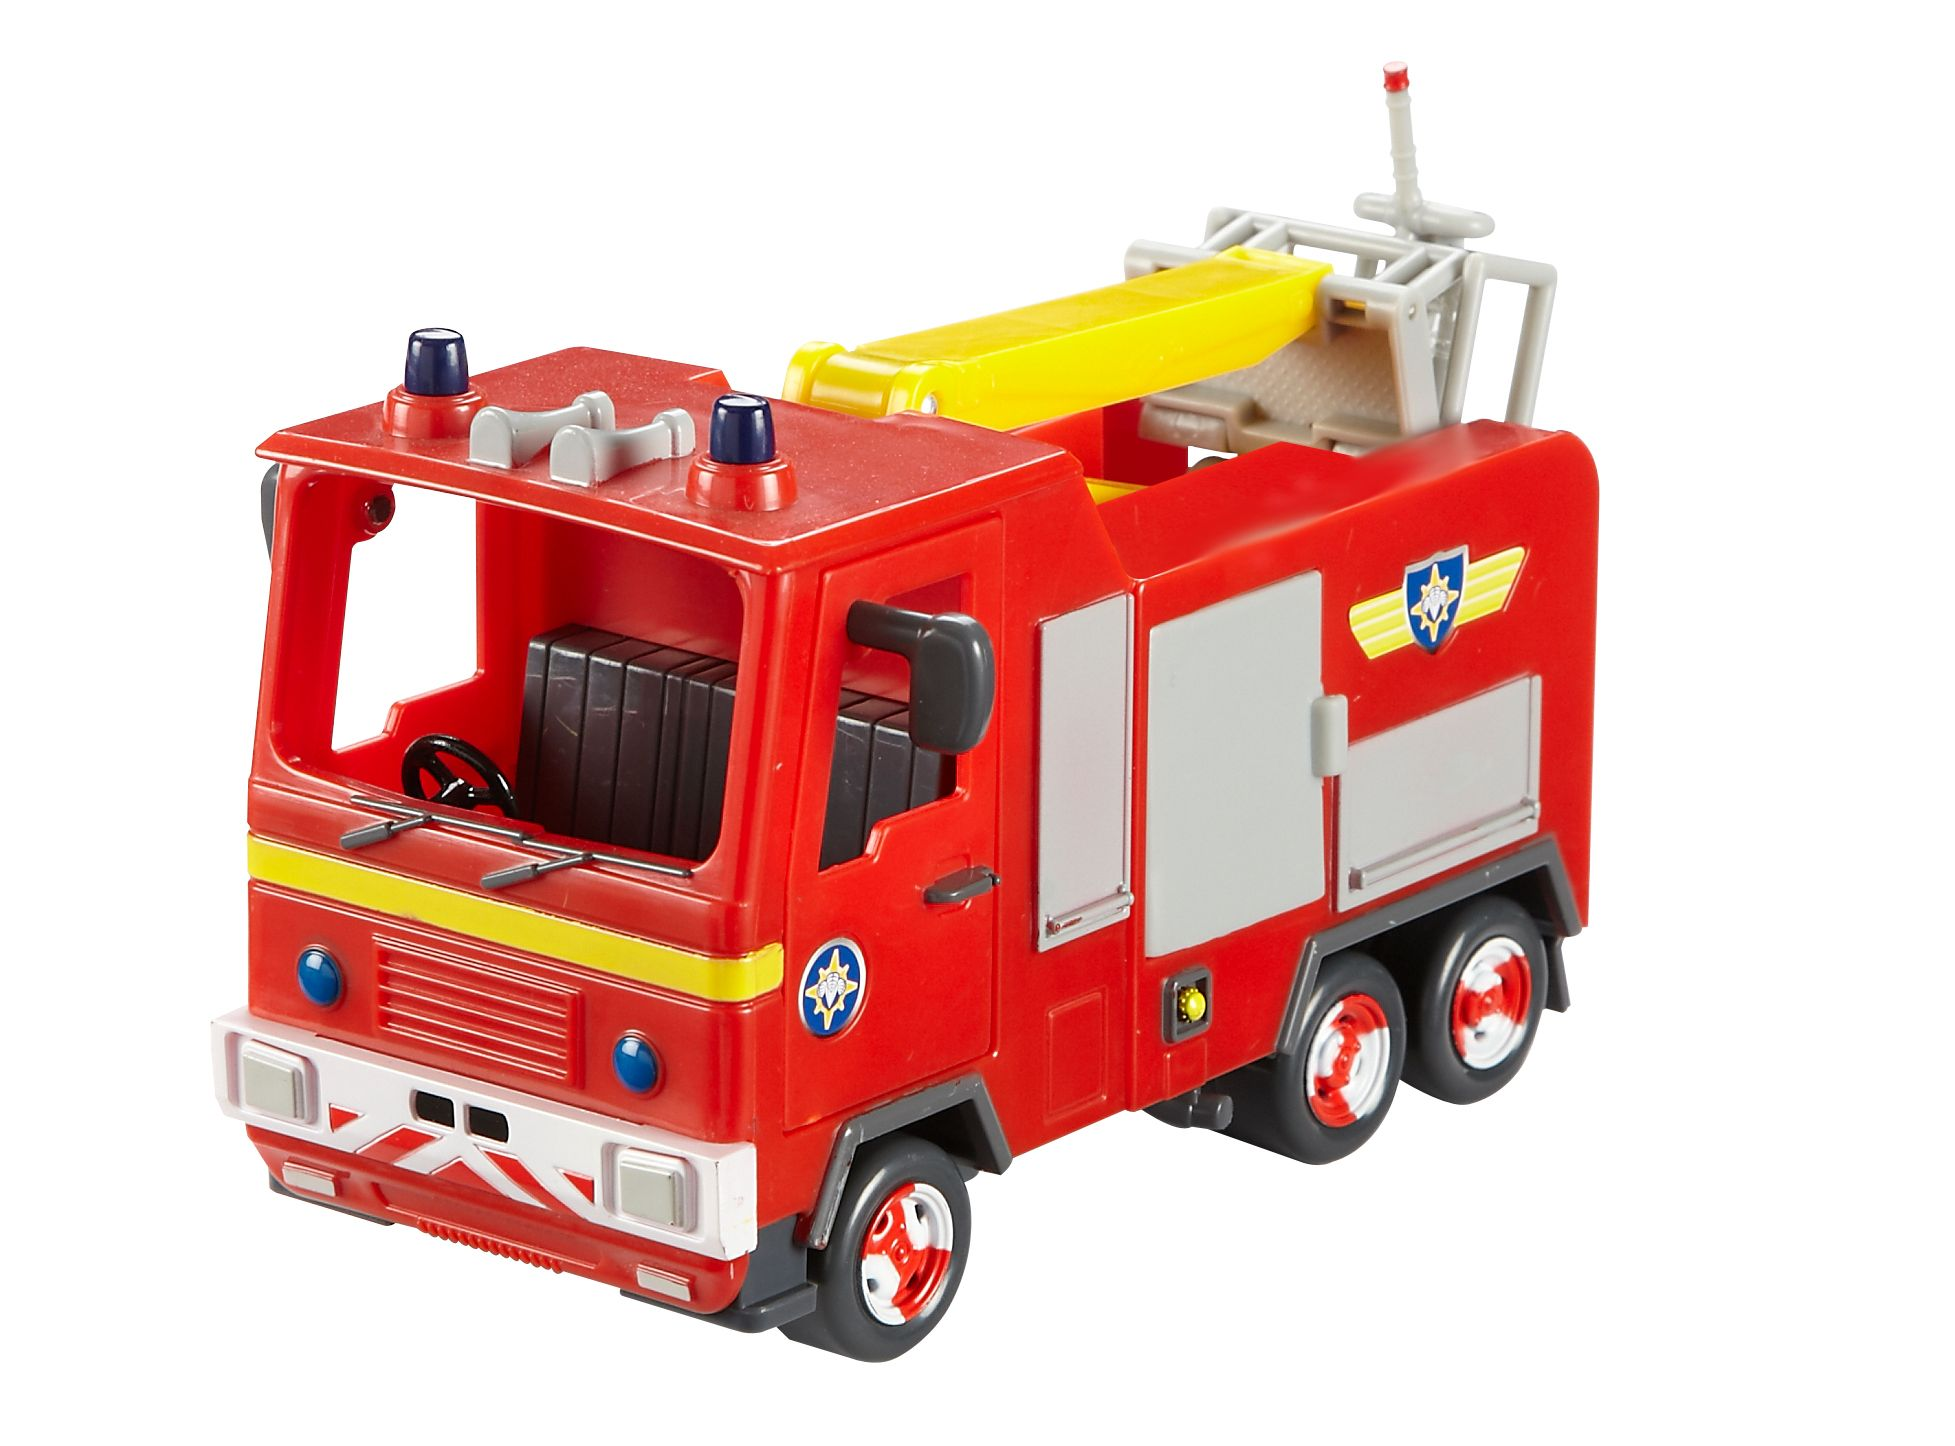 Vehicle and Accessory Set - Fire Engine